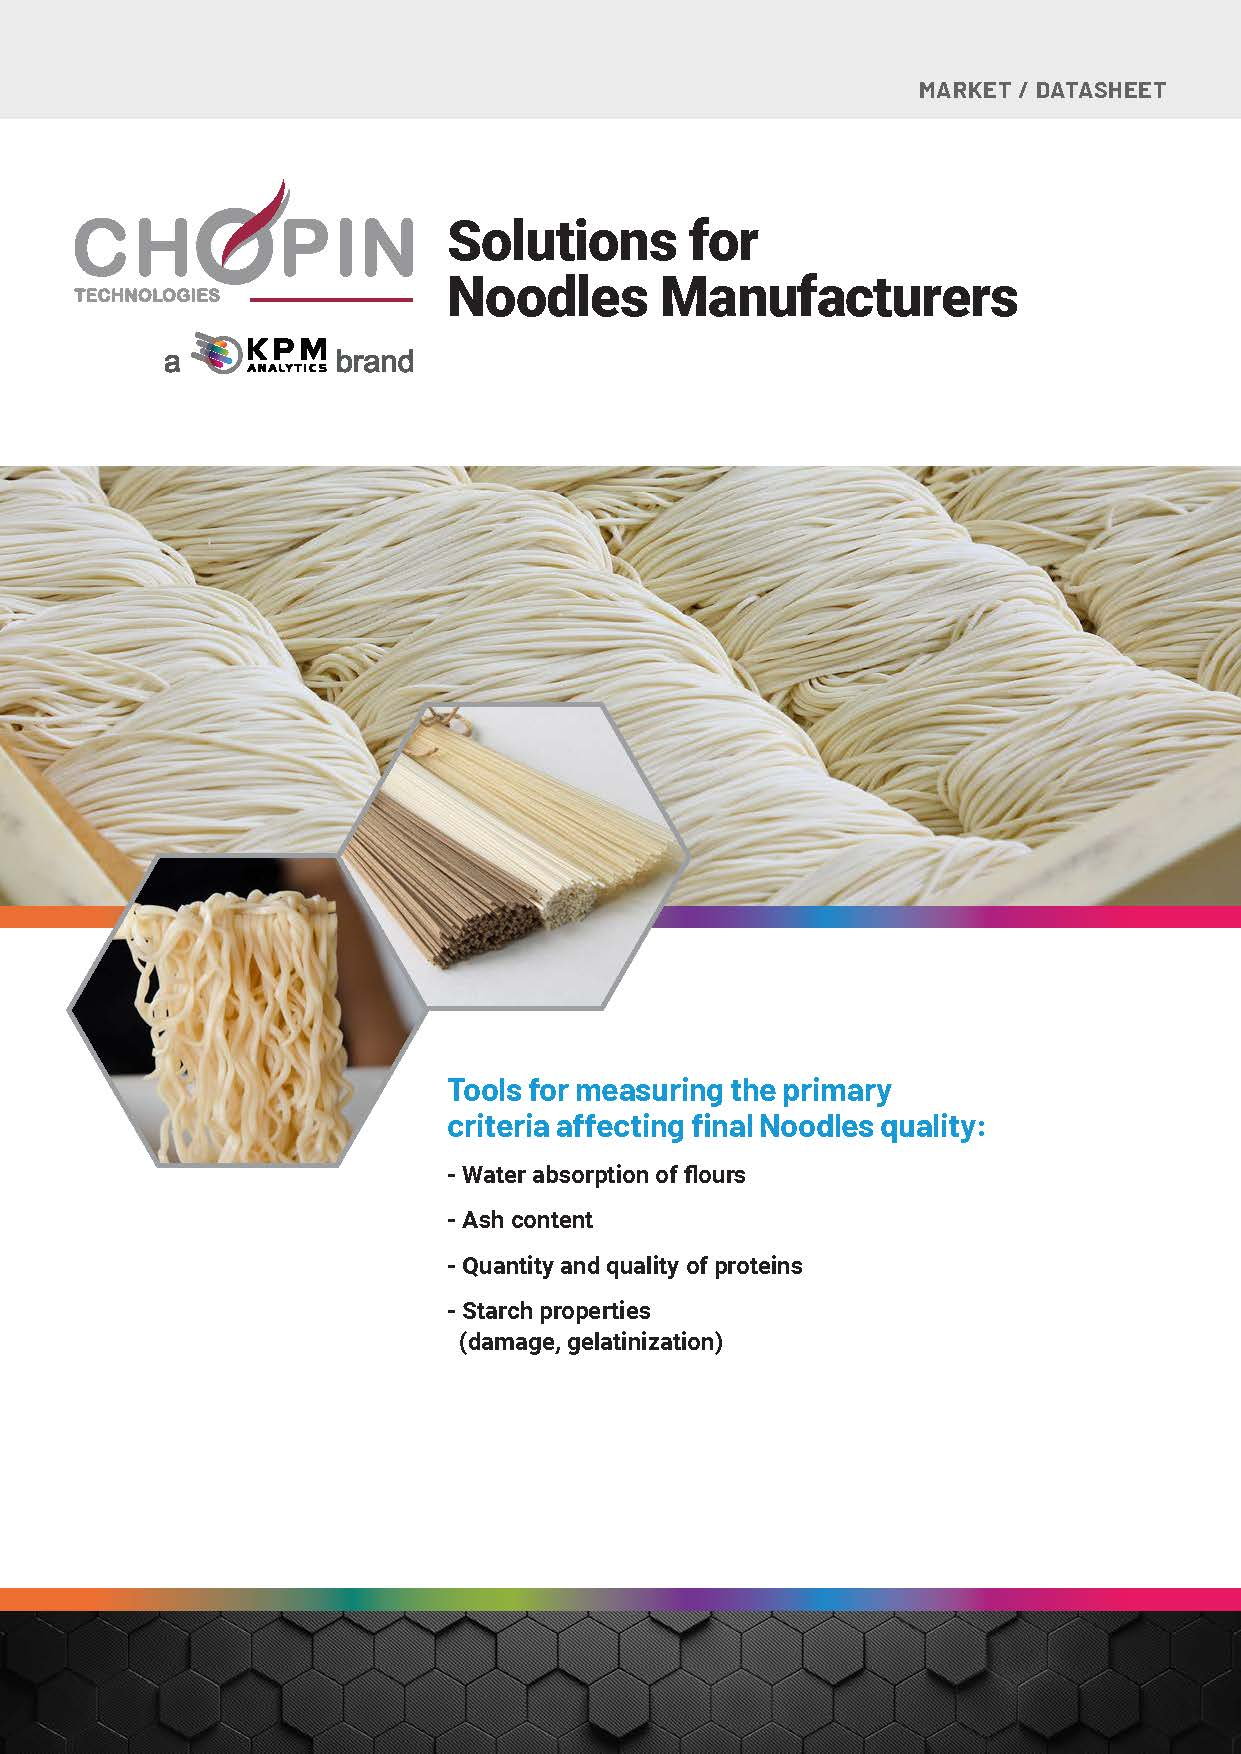 Solutions for Noodle Manufacturers